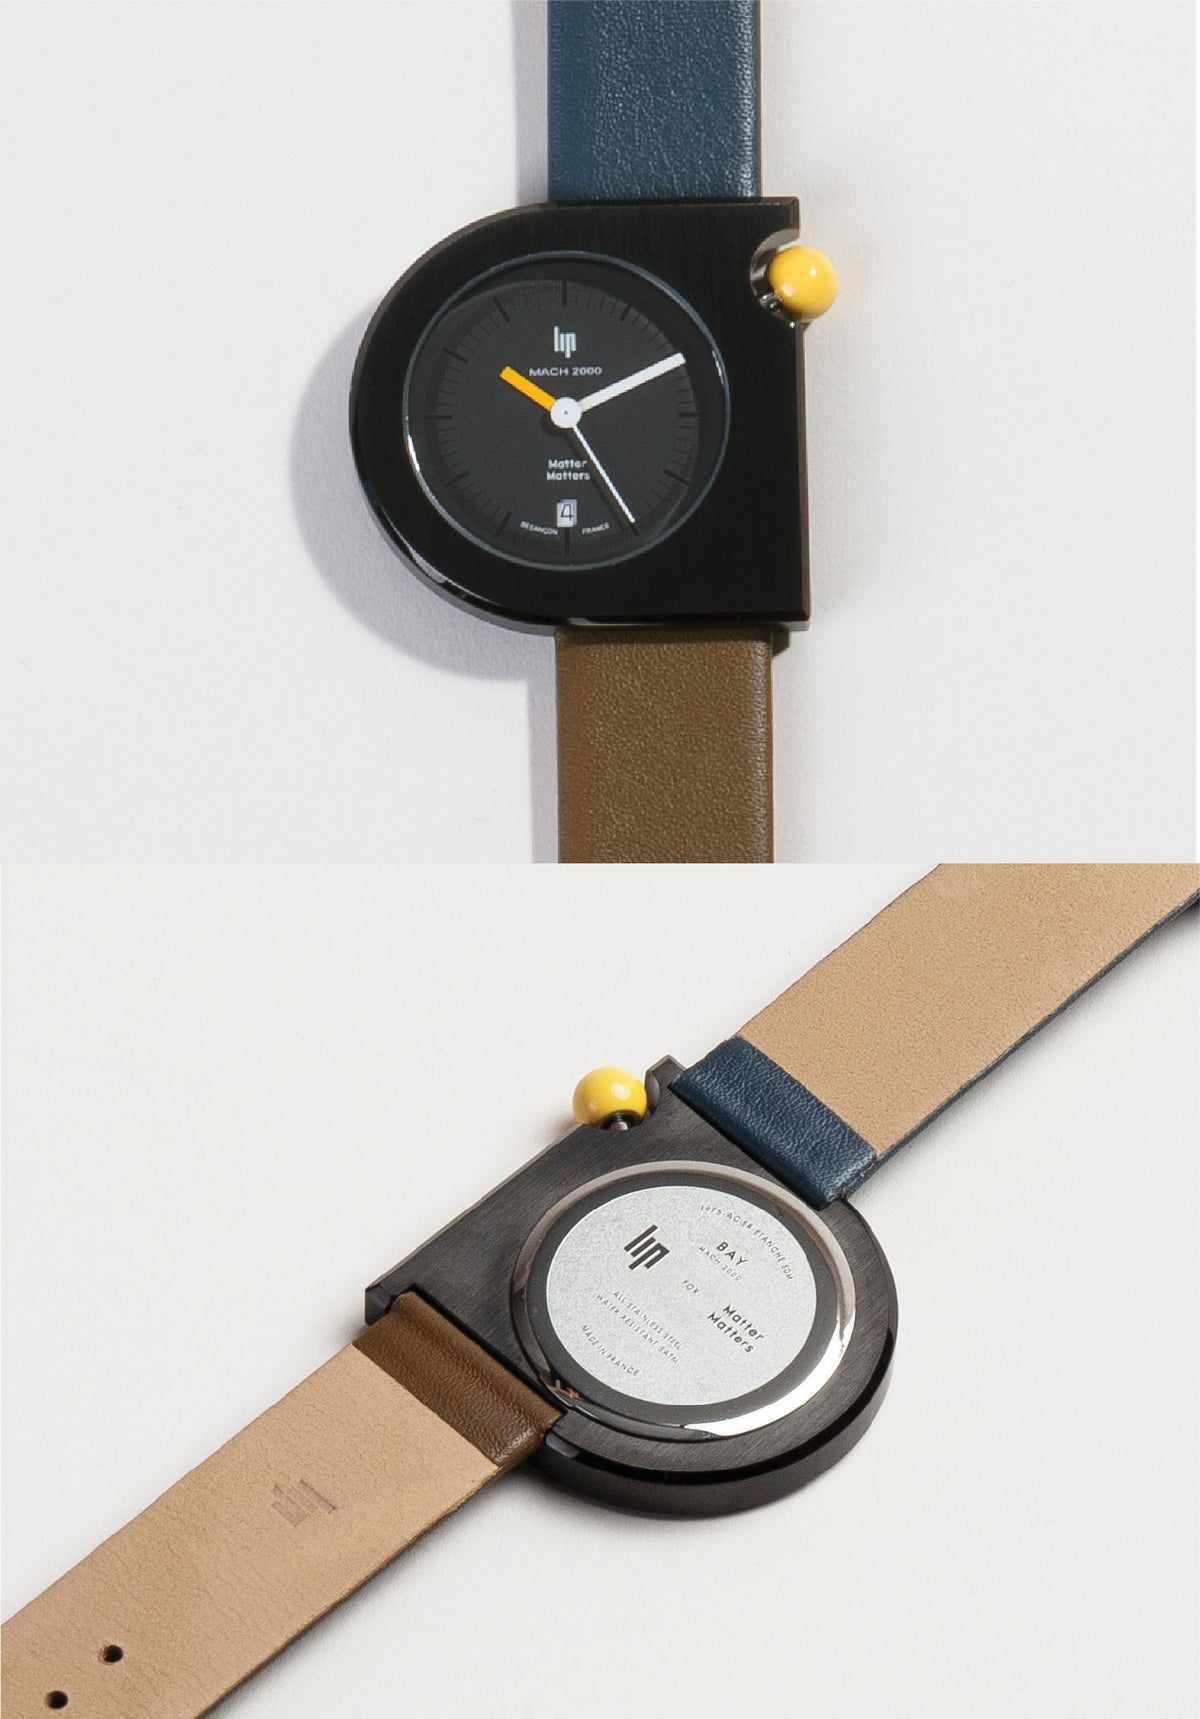 Image of Matter Matters X Lip watch : BAY